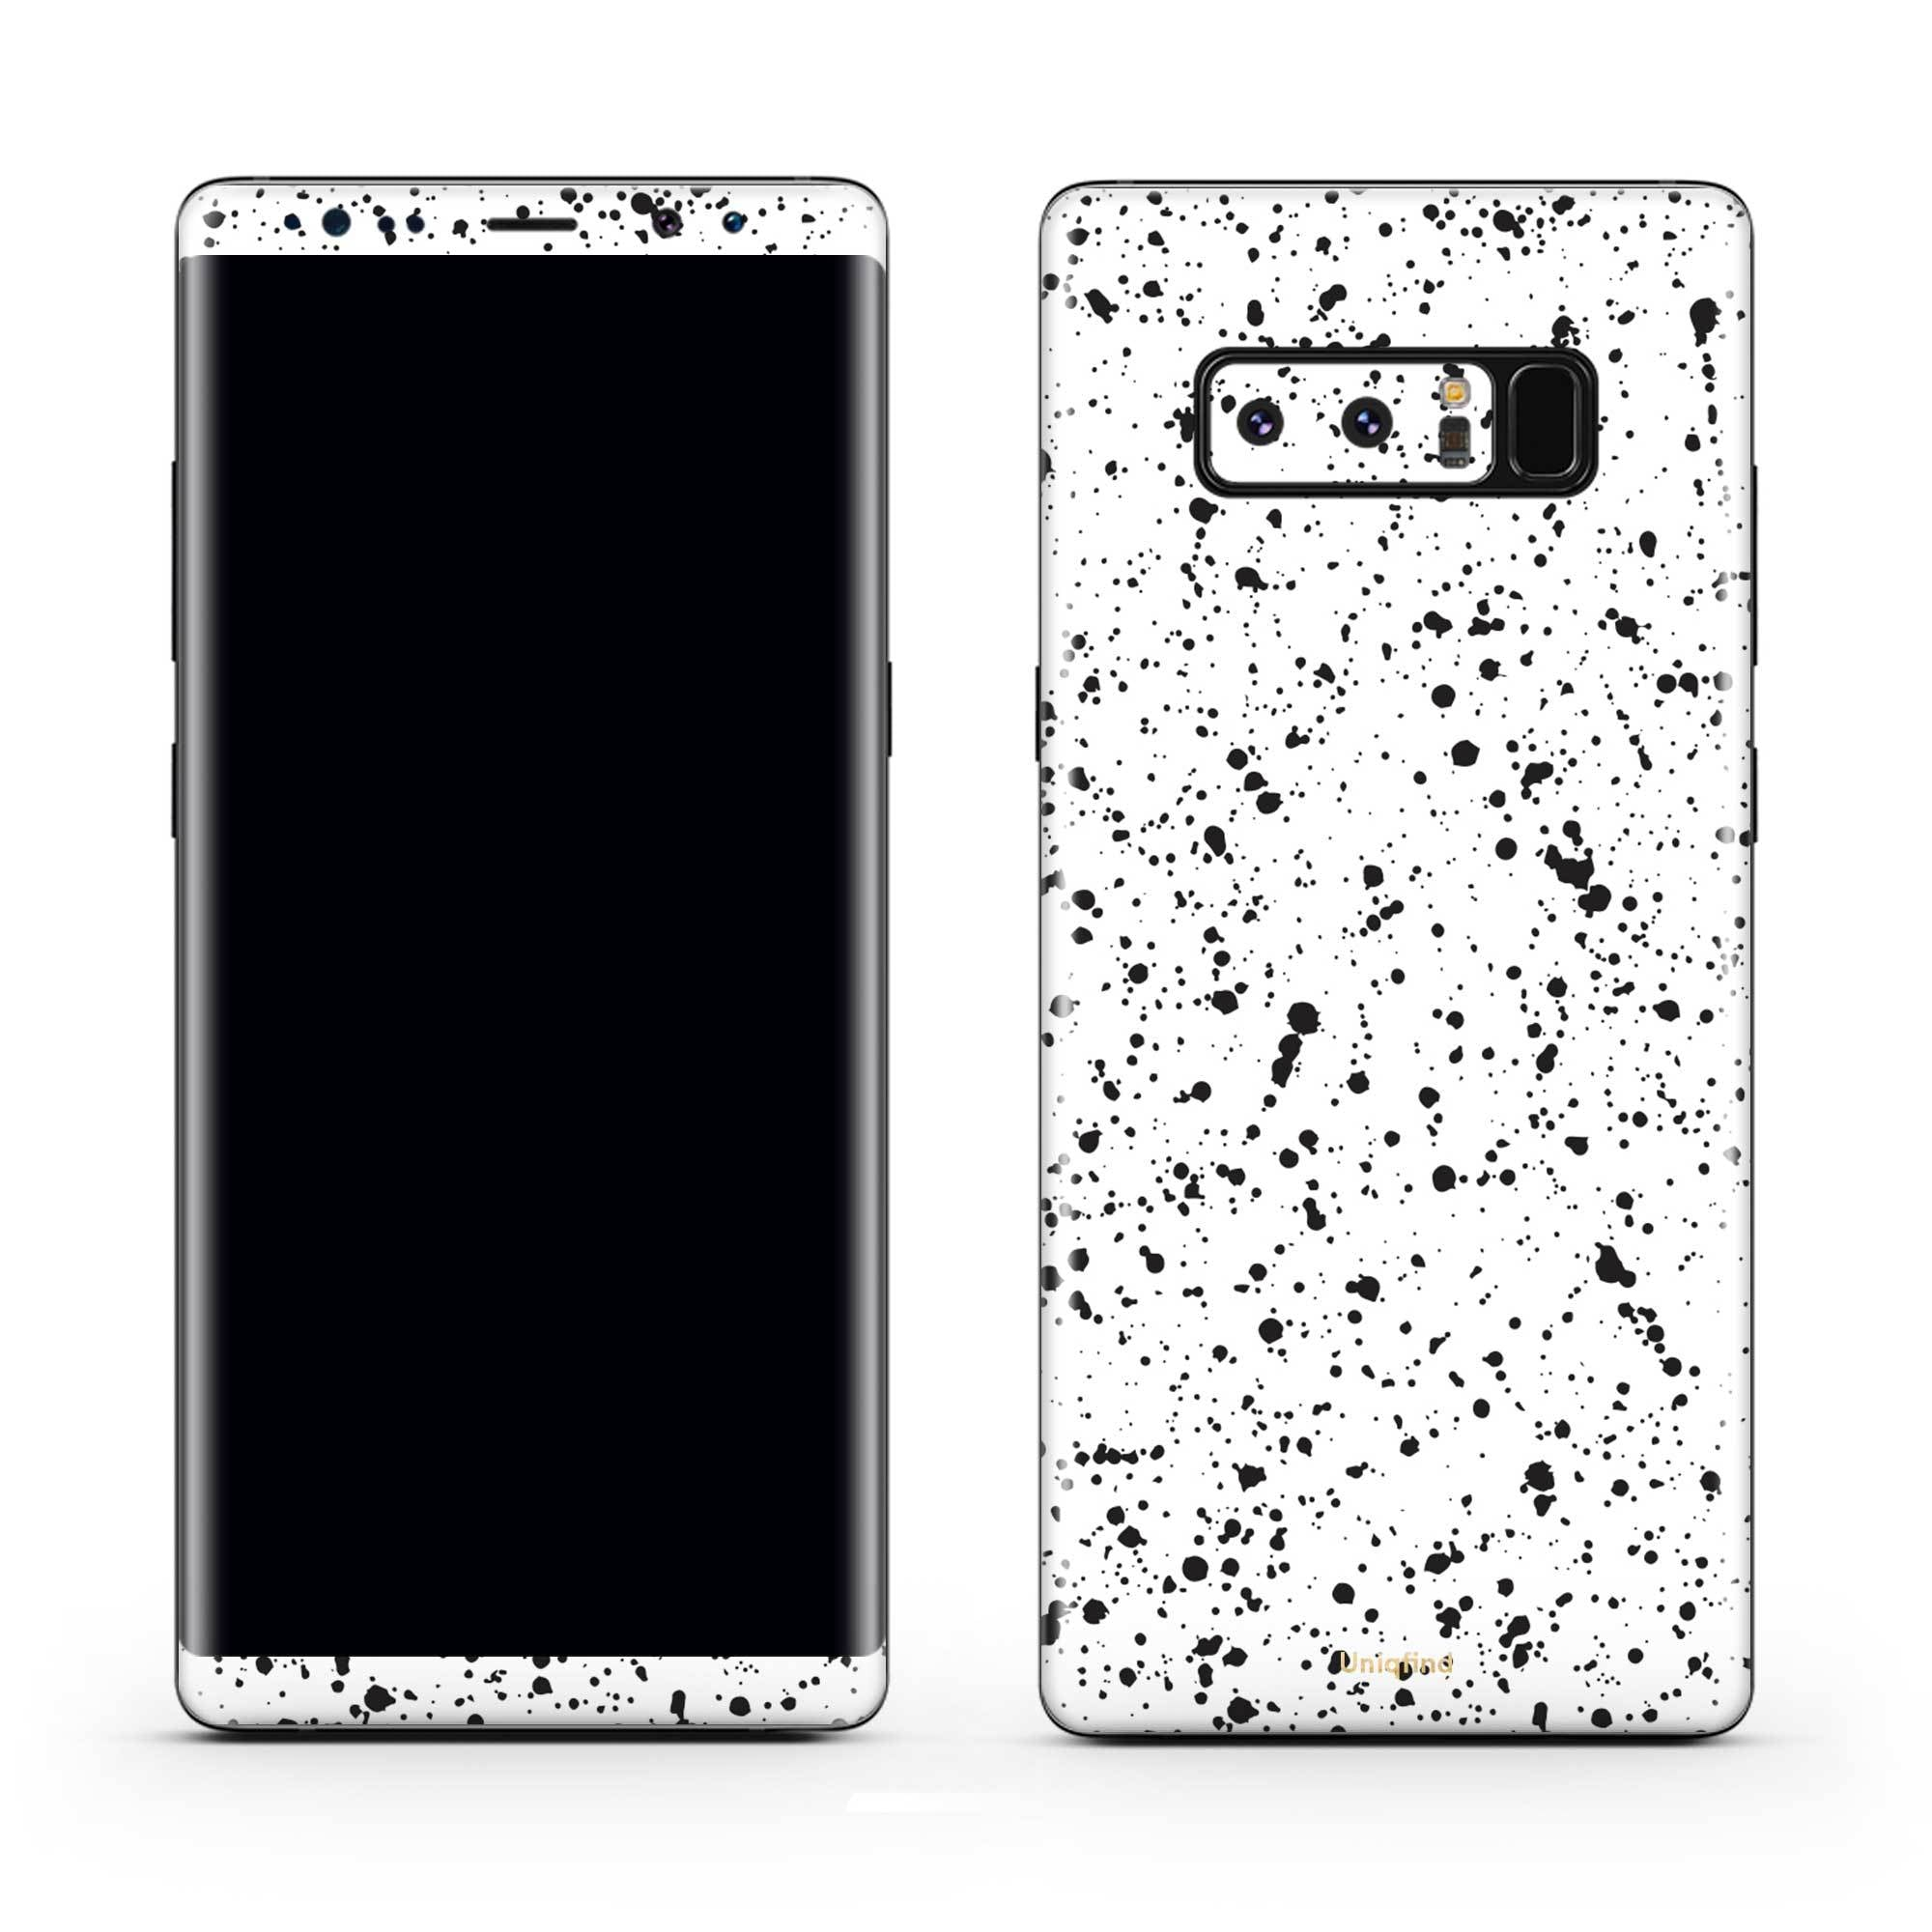 White Speckle Galaxy Note 8 Skin + Case